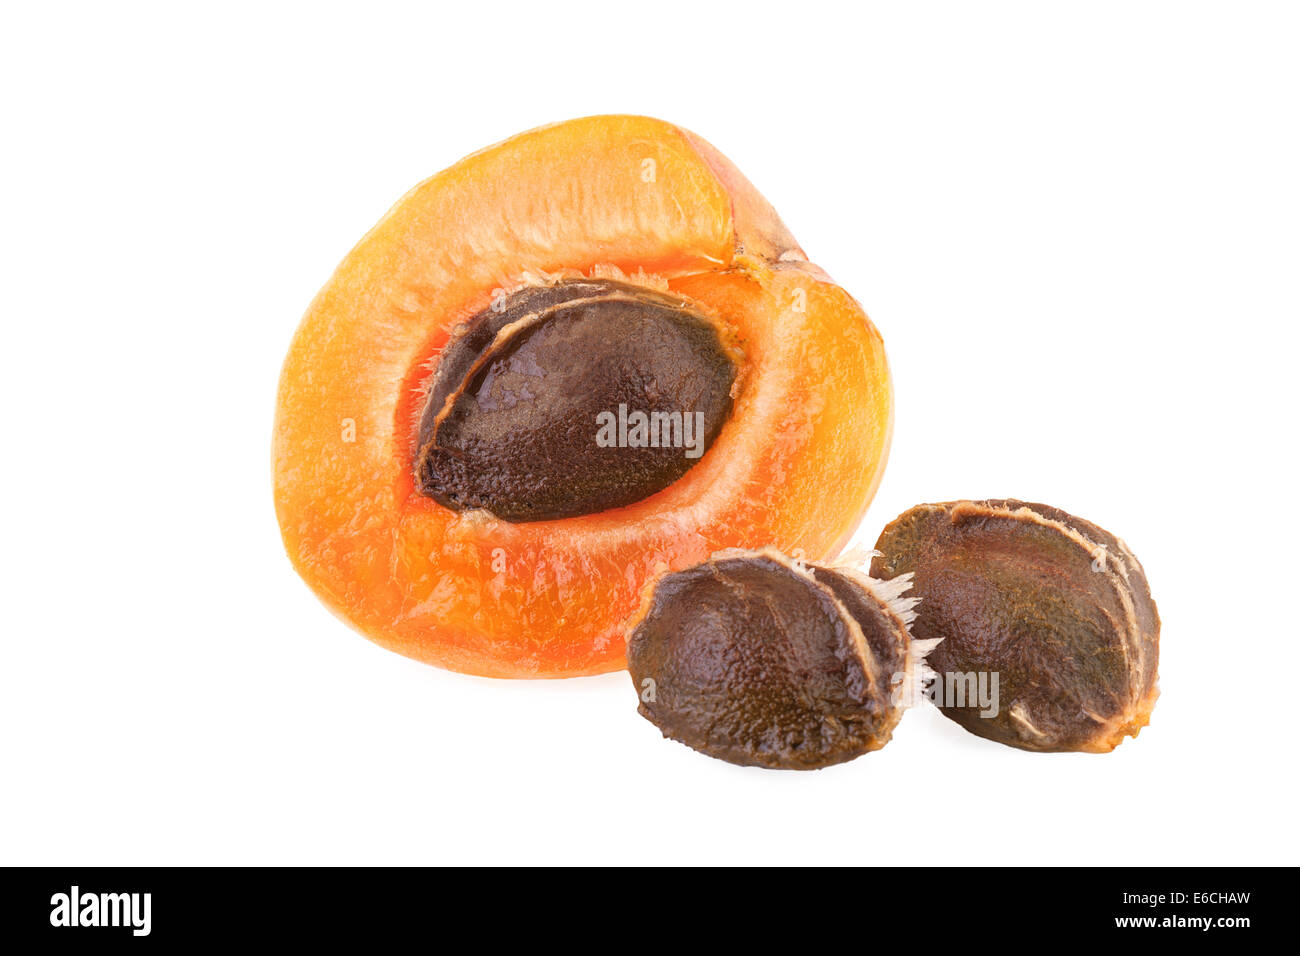 half of apricot with core - Stock Image